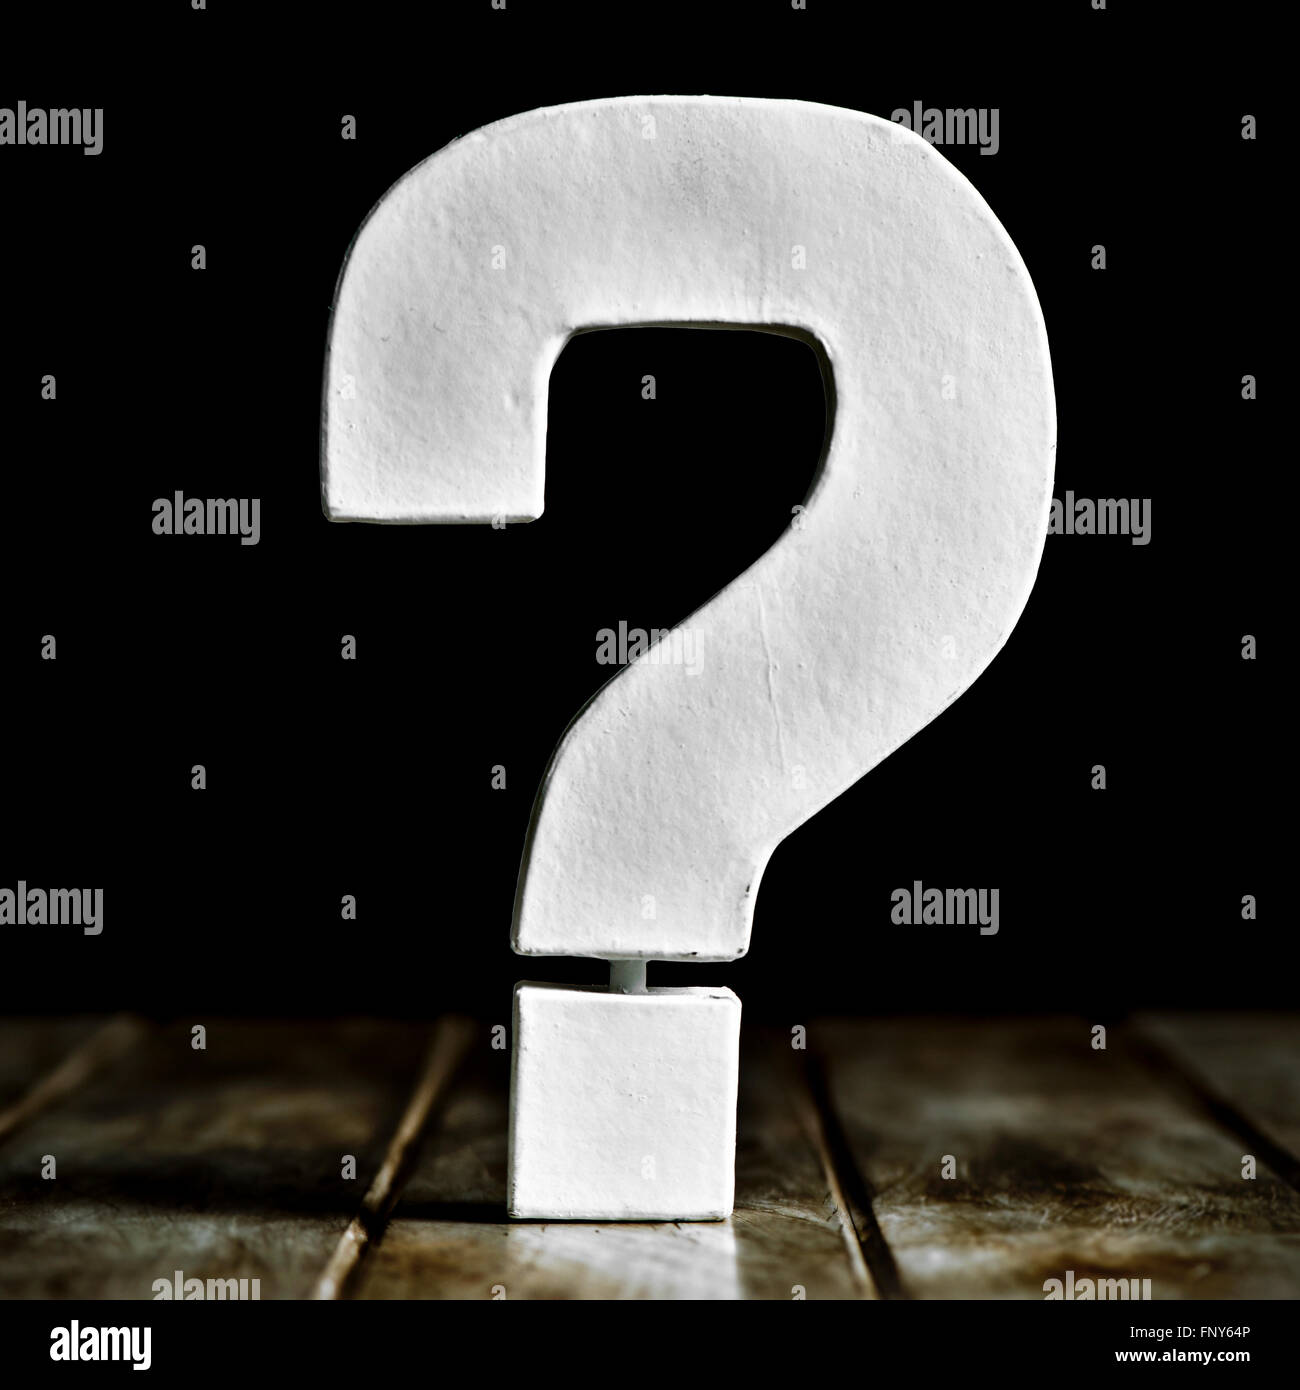 a white three-dimensional question mark on a rustic wooden surface against a black background - Stock Image